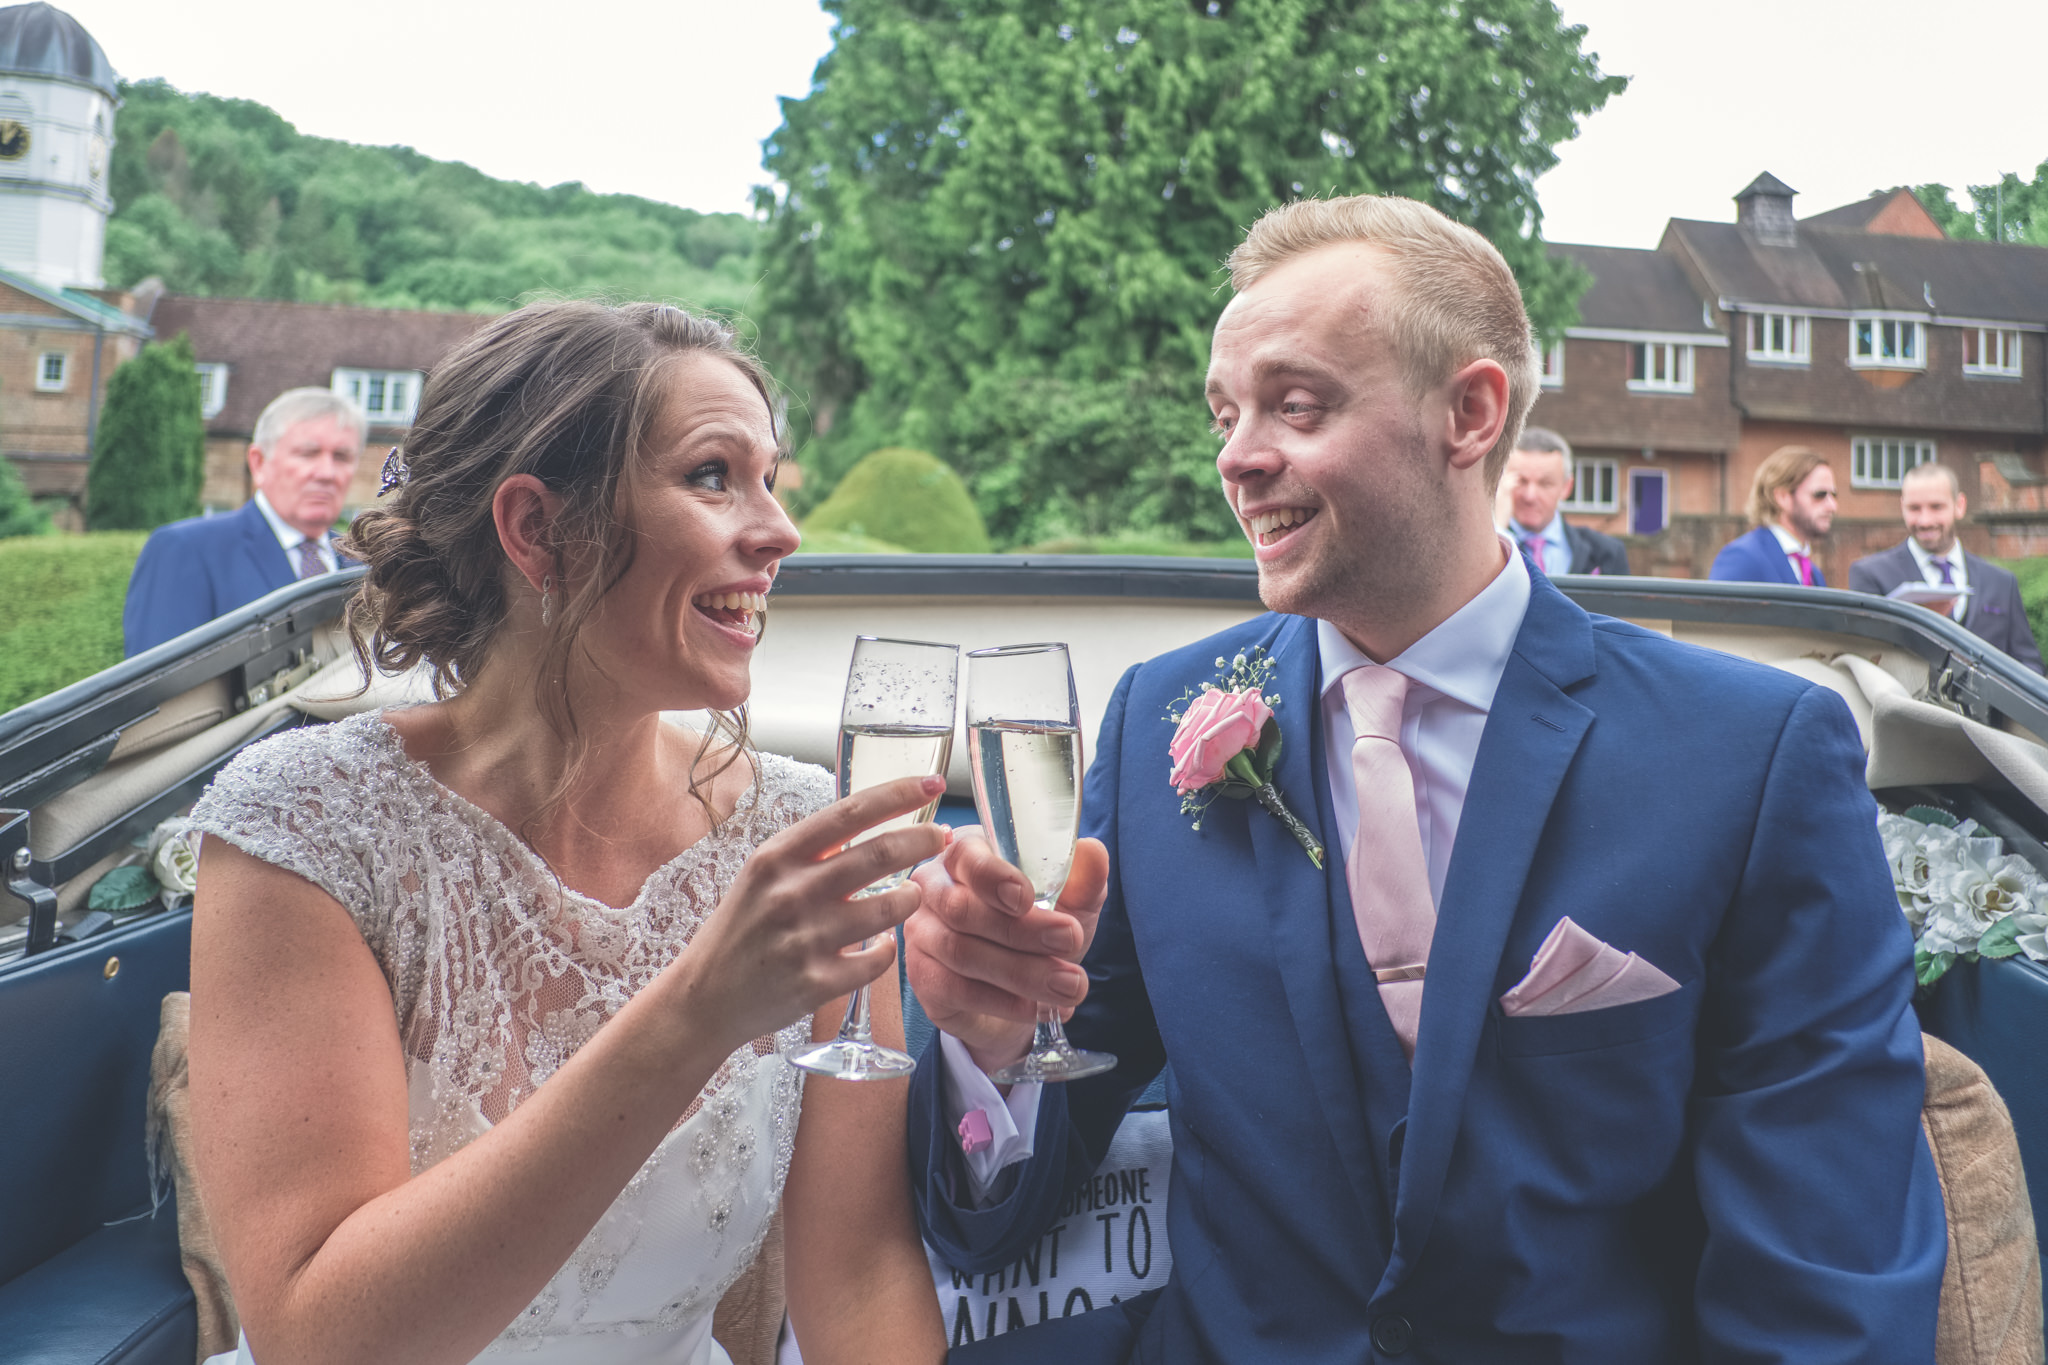 Woldingham School Wedding - Robin Ball Photography - Kate and Lee-022.jpg